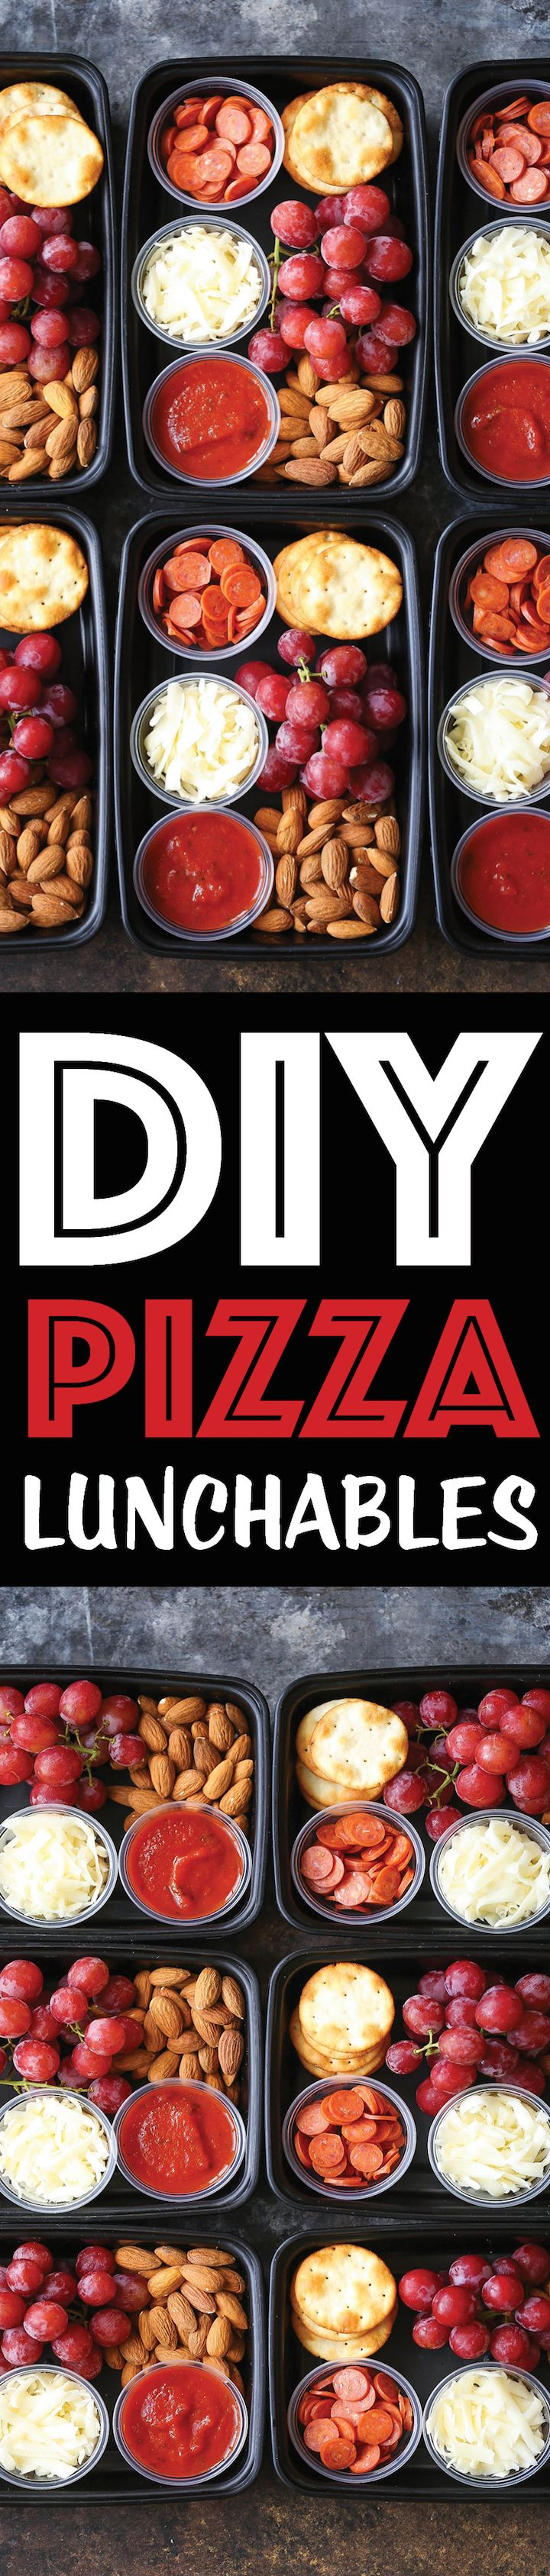 DIY Pizza Lunchables -- this is so much better, tastier and healthier than the store-bought kind! Prep/make ahead of time for the week in just 10-15 min!